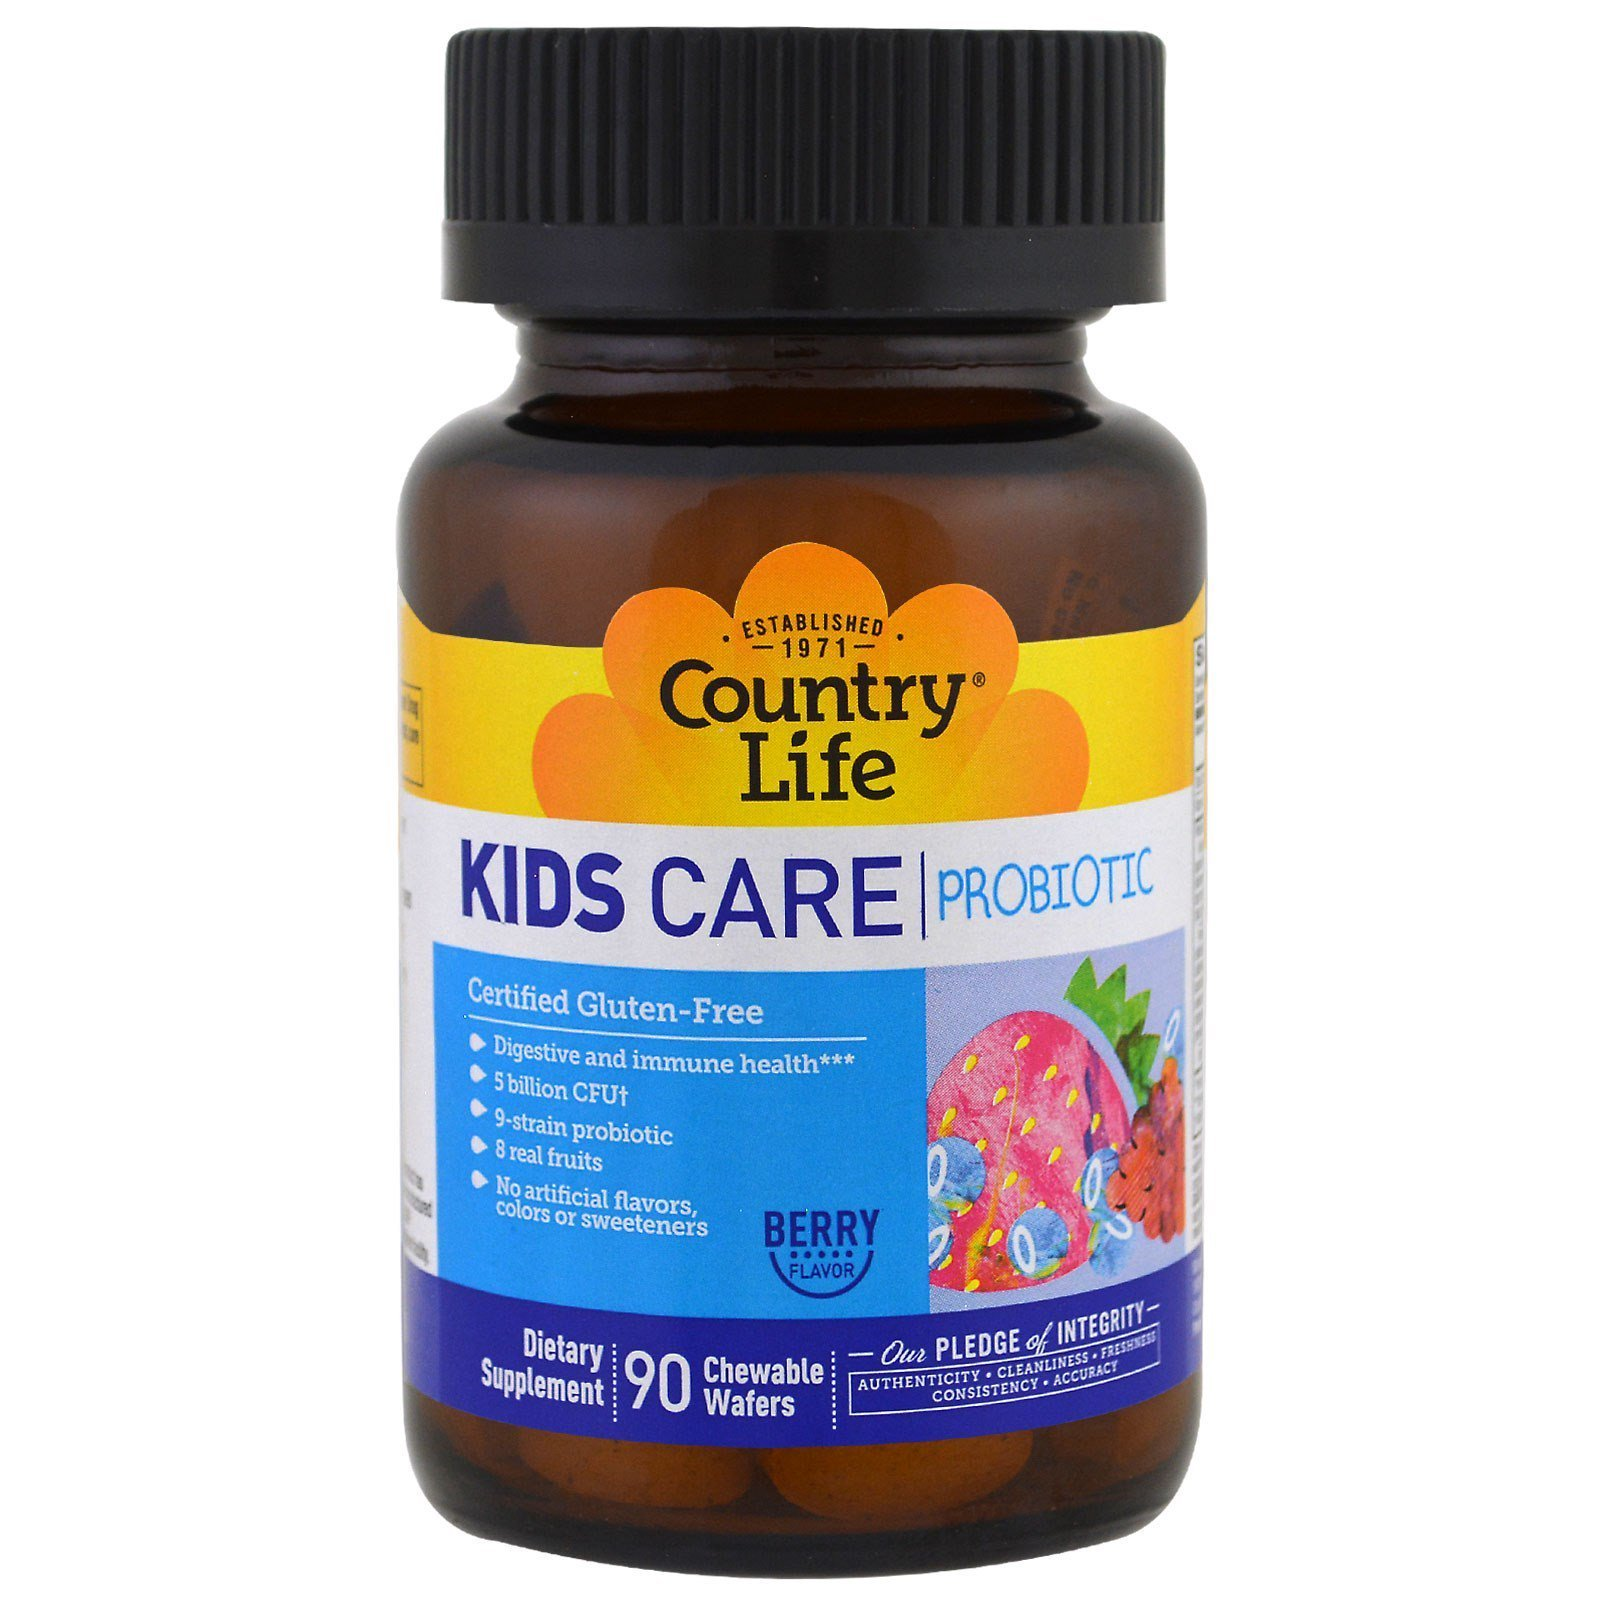 Kids Care Probiotic Country Life 90 Chewable